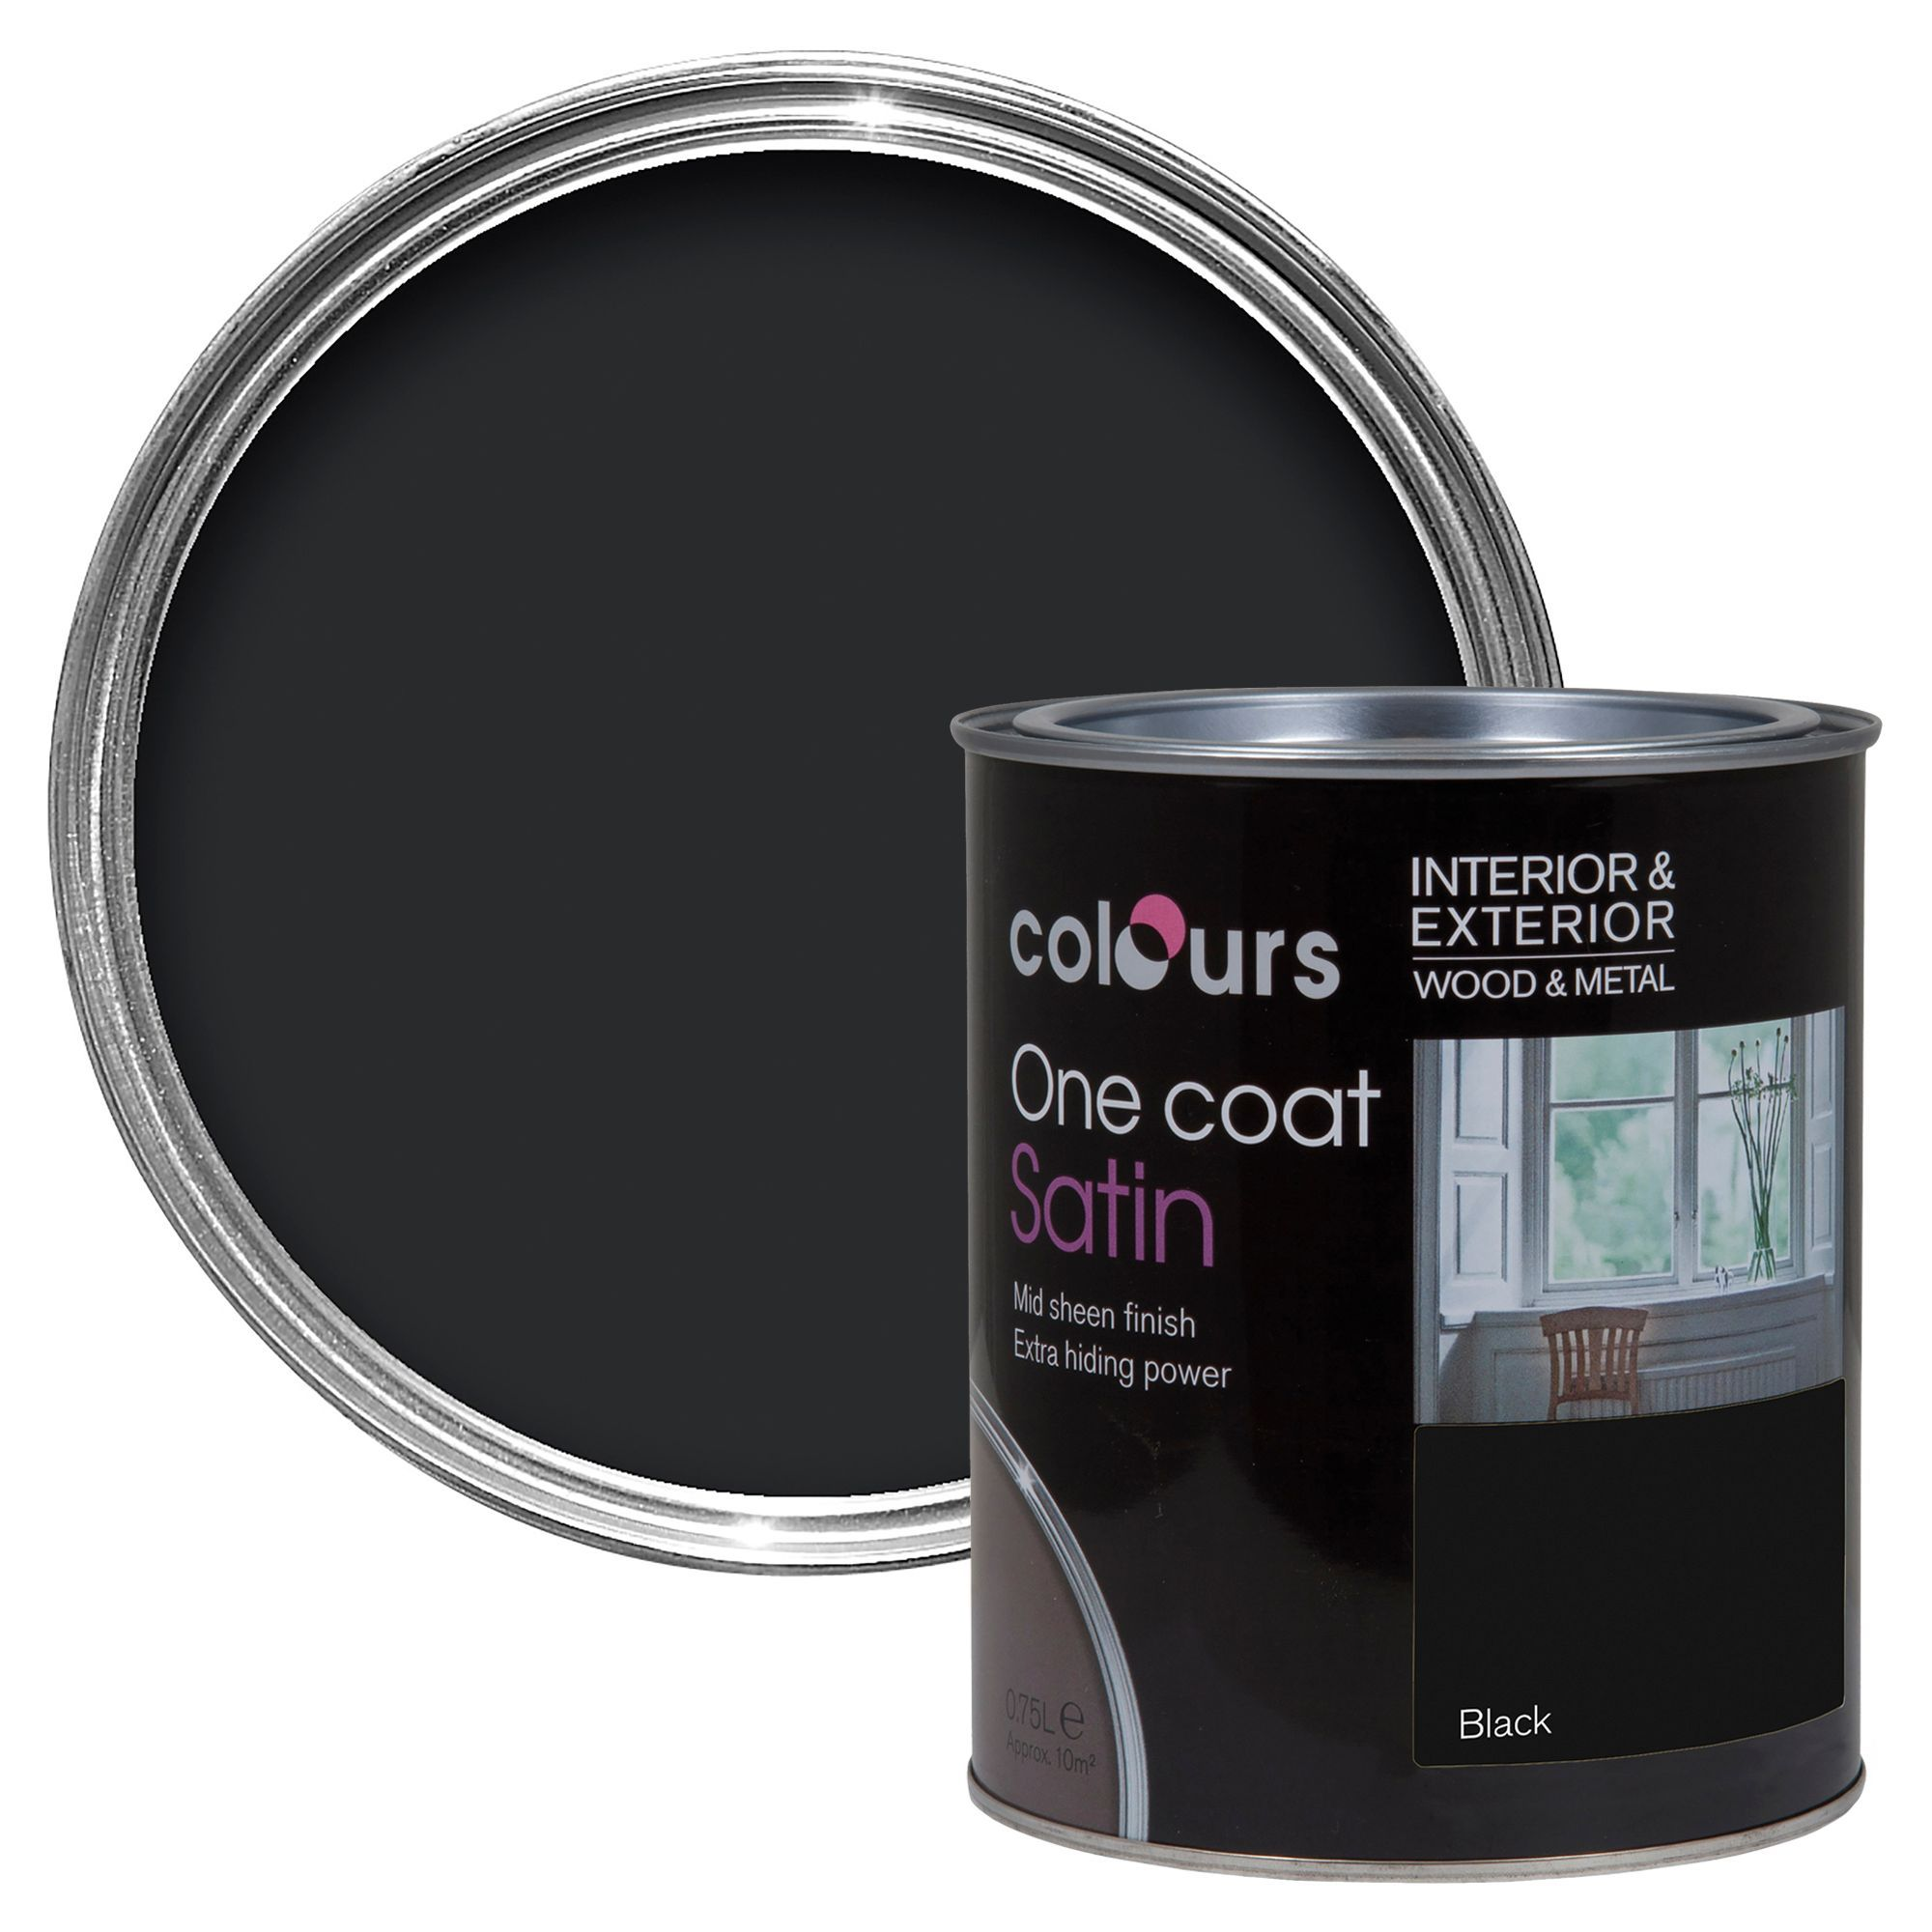 Colours One Coat Interior Exterior Black Satin Wood Metal Paint 750ml Departments Diy At B Q